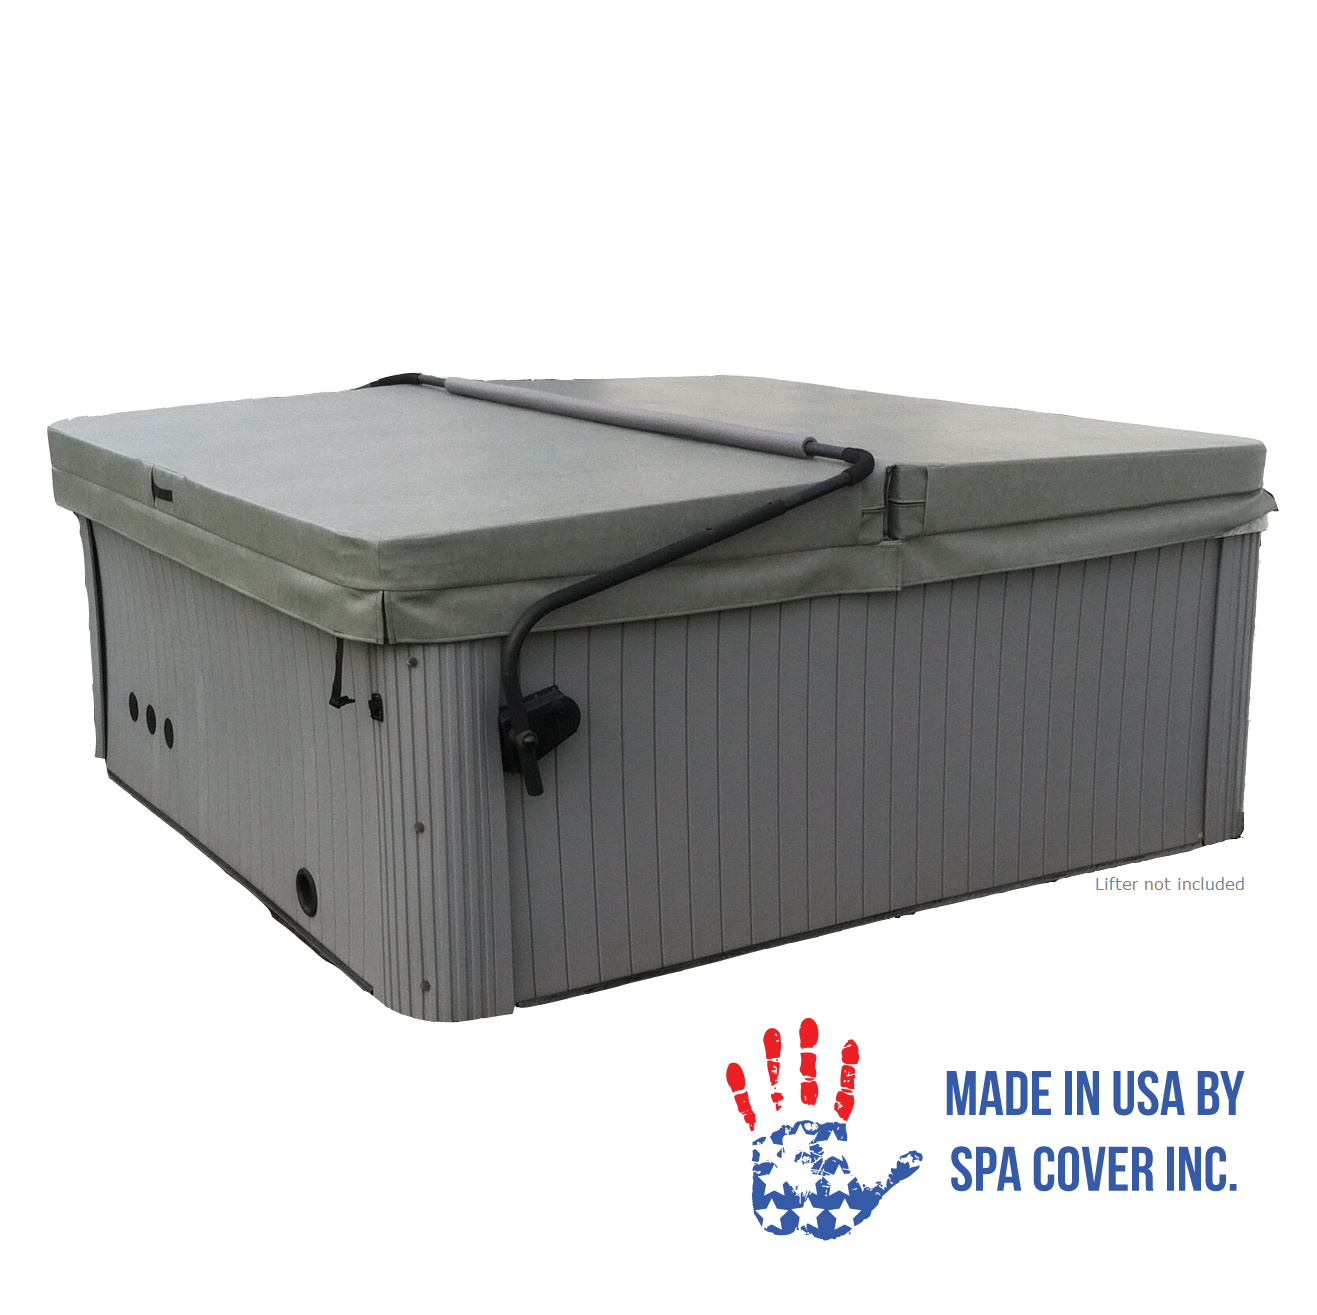 Marquis Spas Replacement Spa Covers and Hot Tub Covers